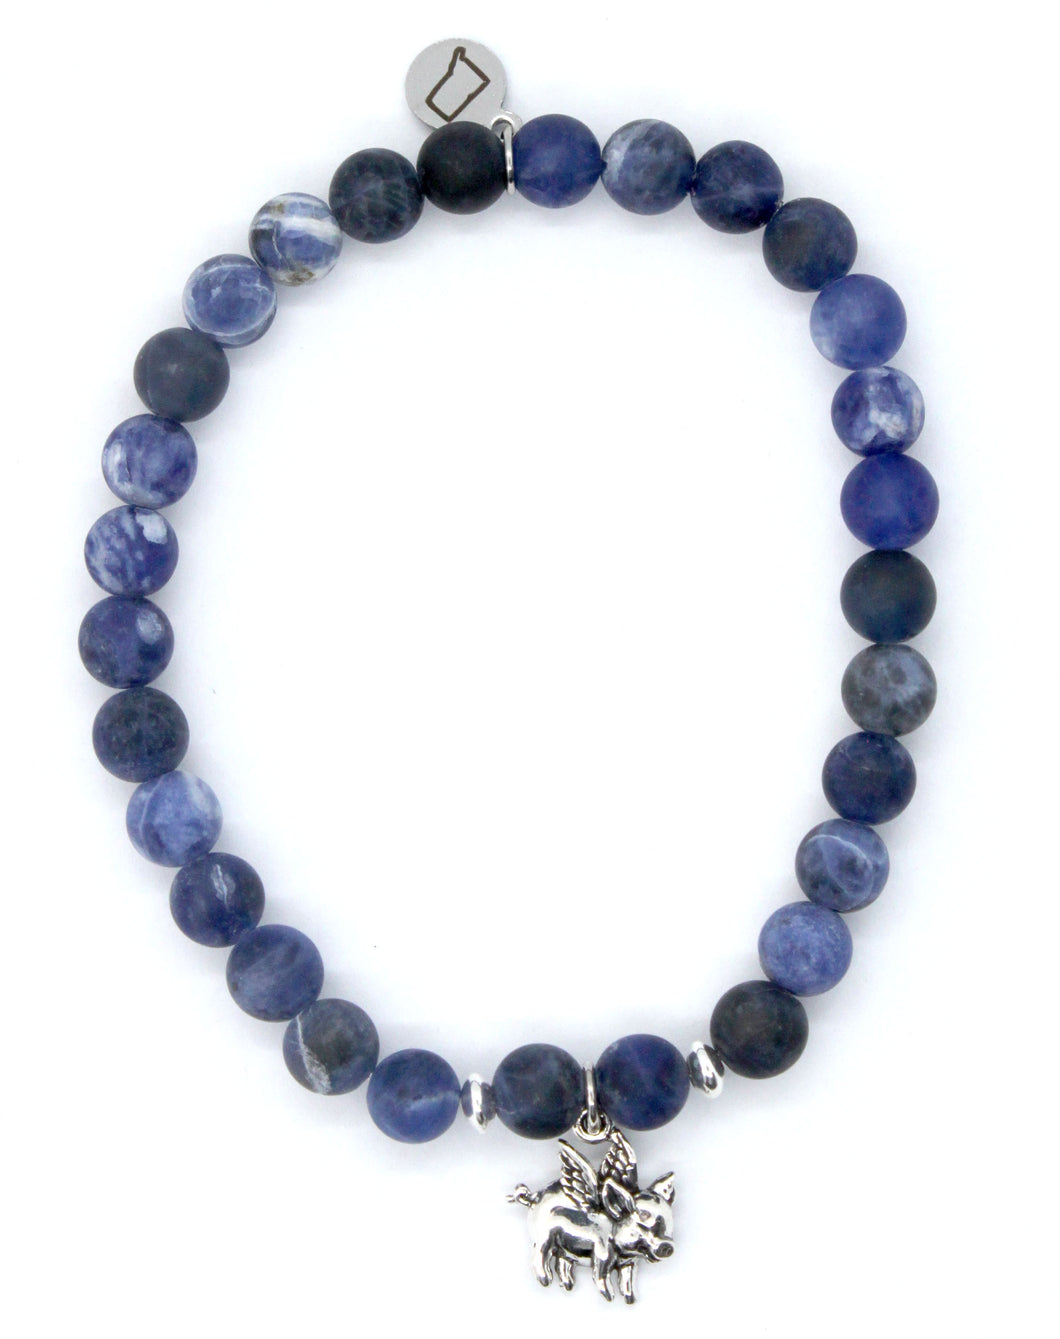 Matte Sodalite Stone Bracelet with Sterling Silver